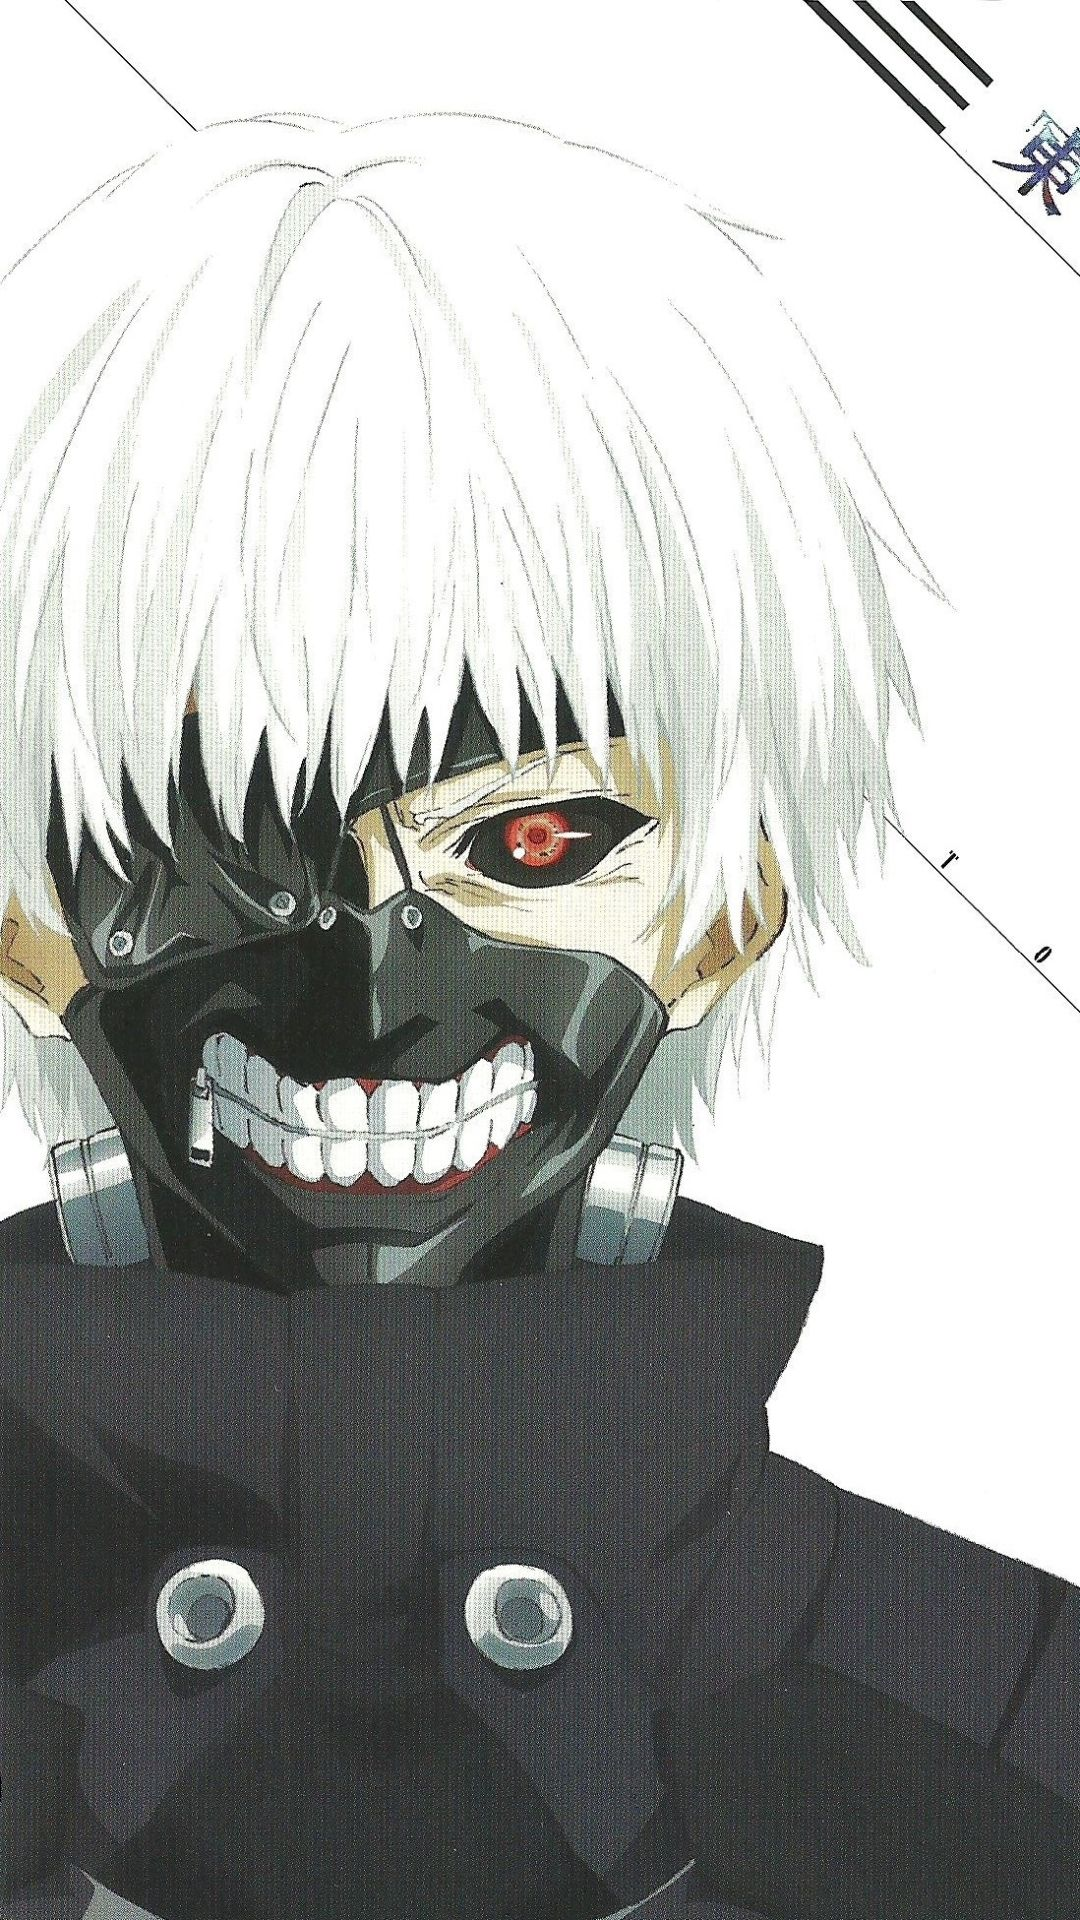 Download this Wallpaper Anime/Tokyo Ghoul (1080x1920) for